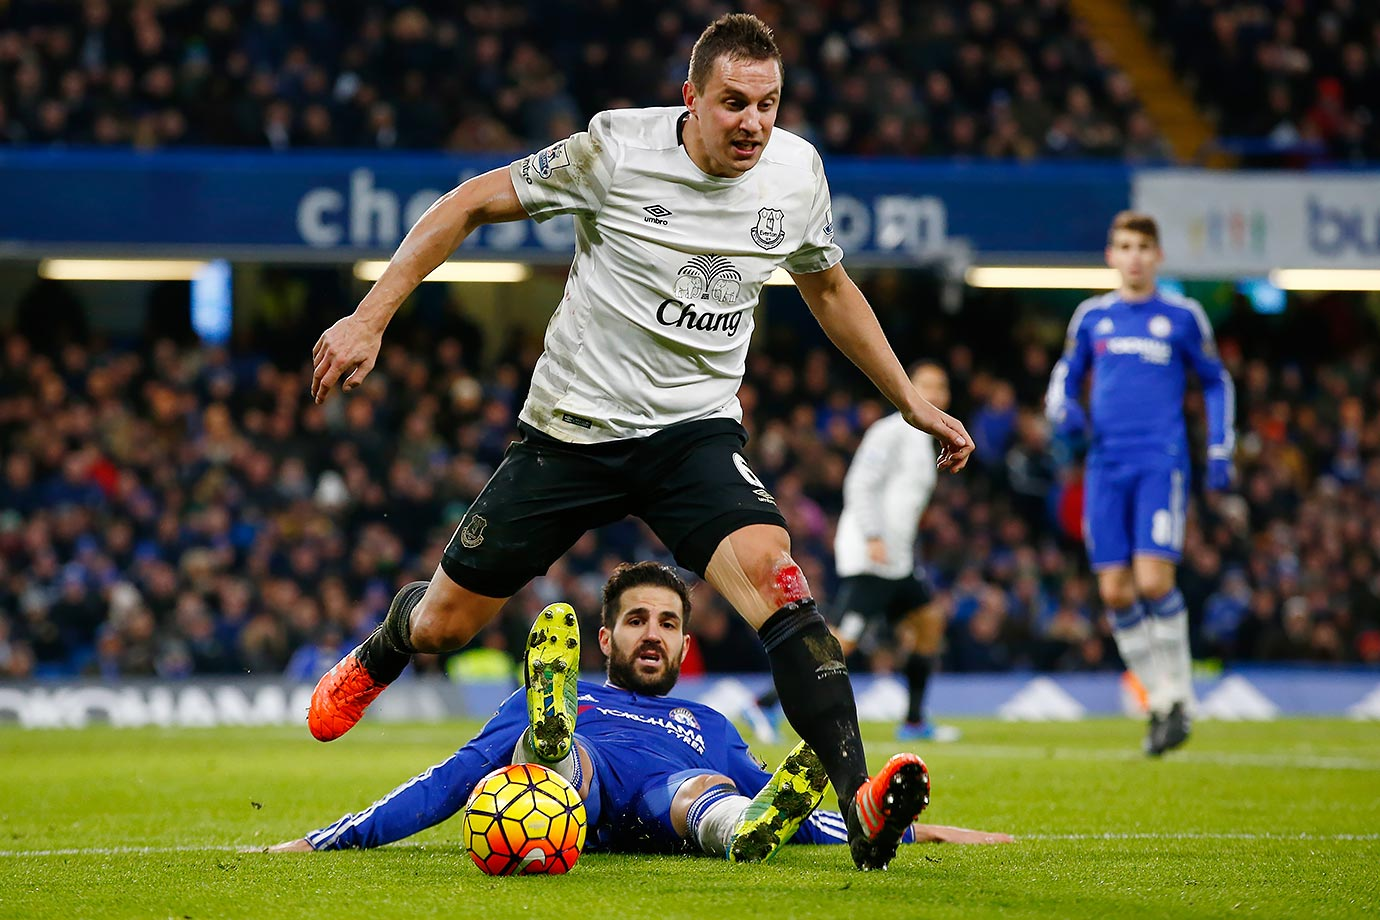 Chelsea's Sesc Fabregas appears to give a pretty lackadaisical effort against Everton's Phil Jagielka.